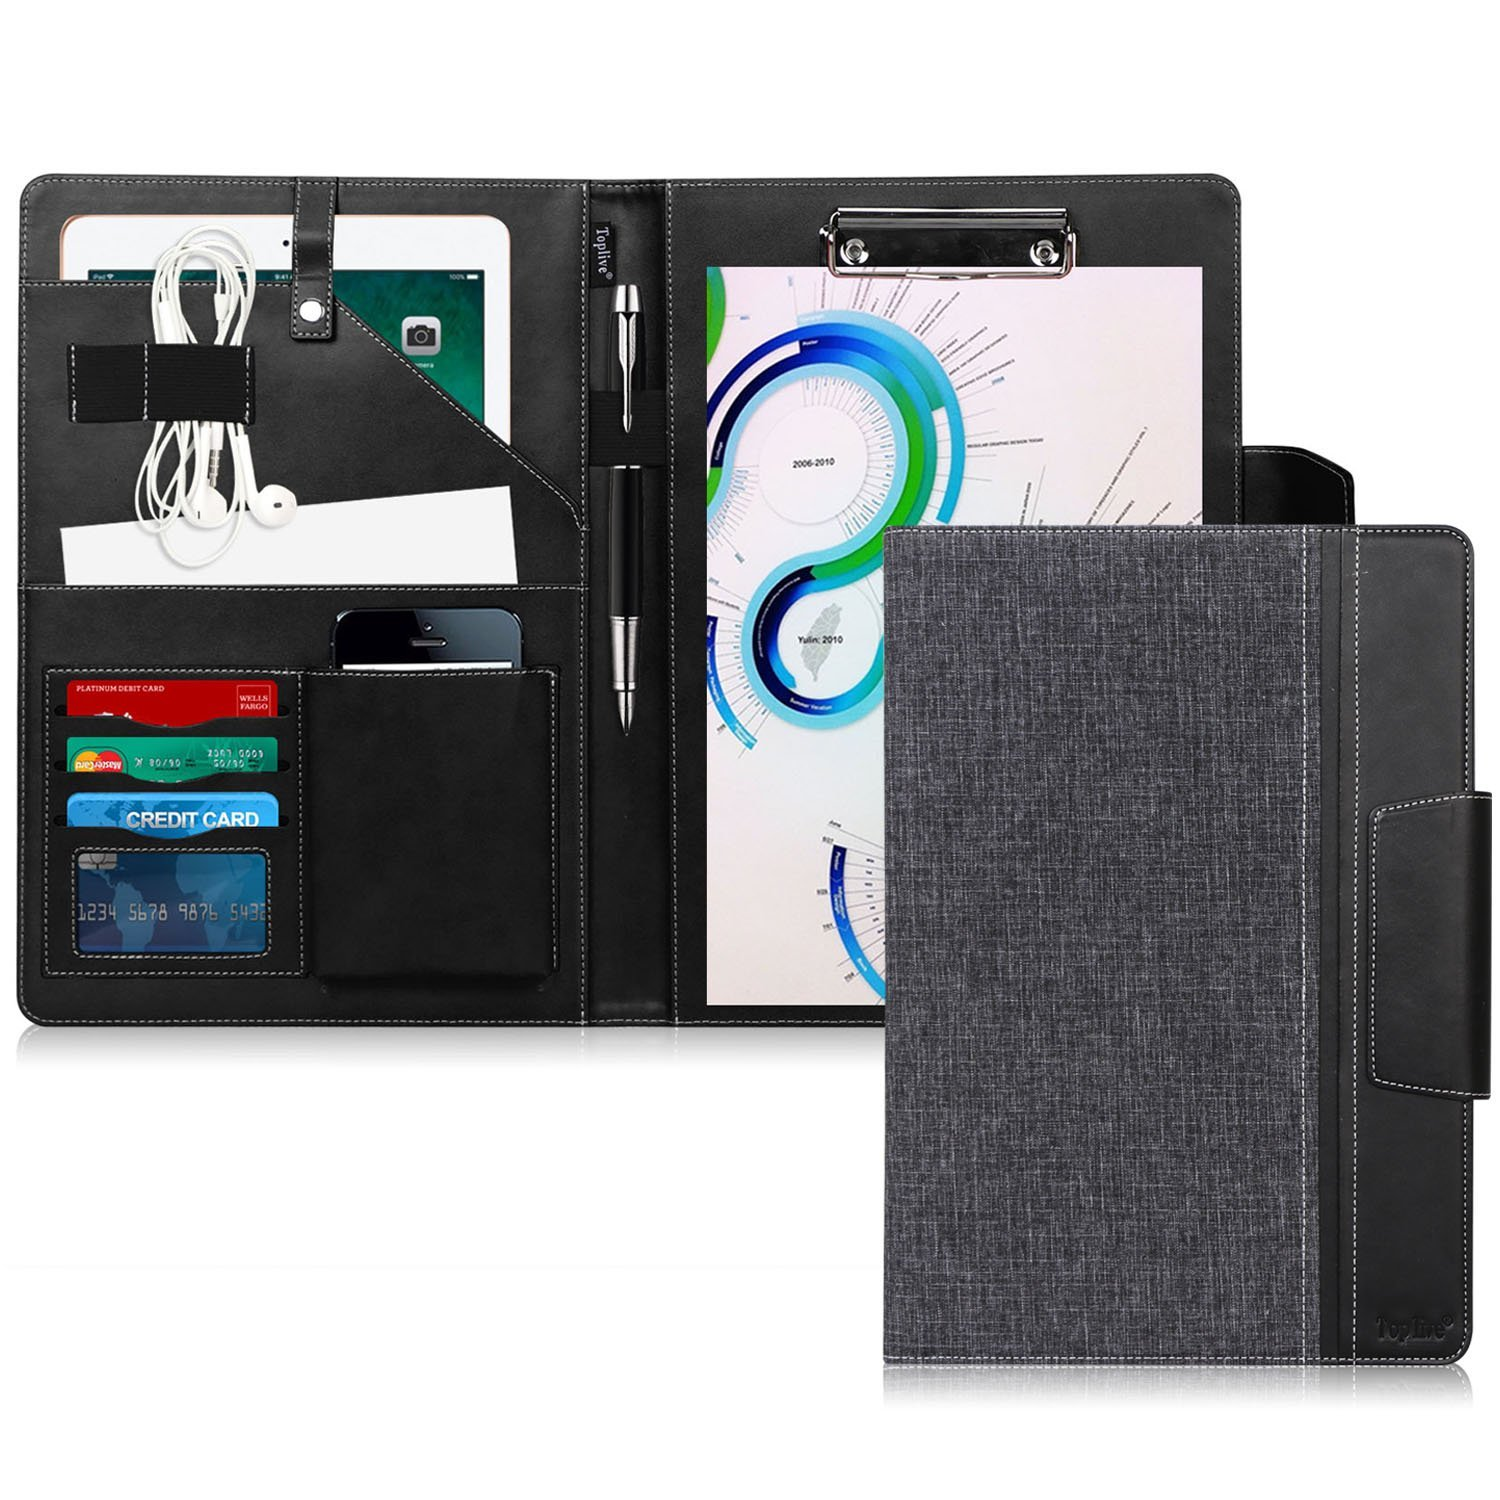 Toplive Portfolio Case Padfolio, Executive Business Document Organizer with Letter Size Clipboard, Business Card Holder, Tablet Sleeve(Up to 10.5'' Tablet), for Business School Office Conference, Black